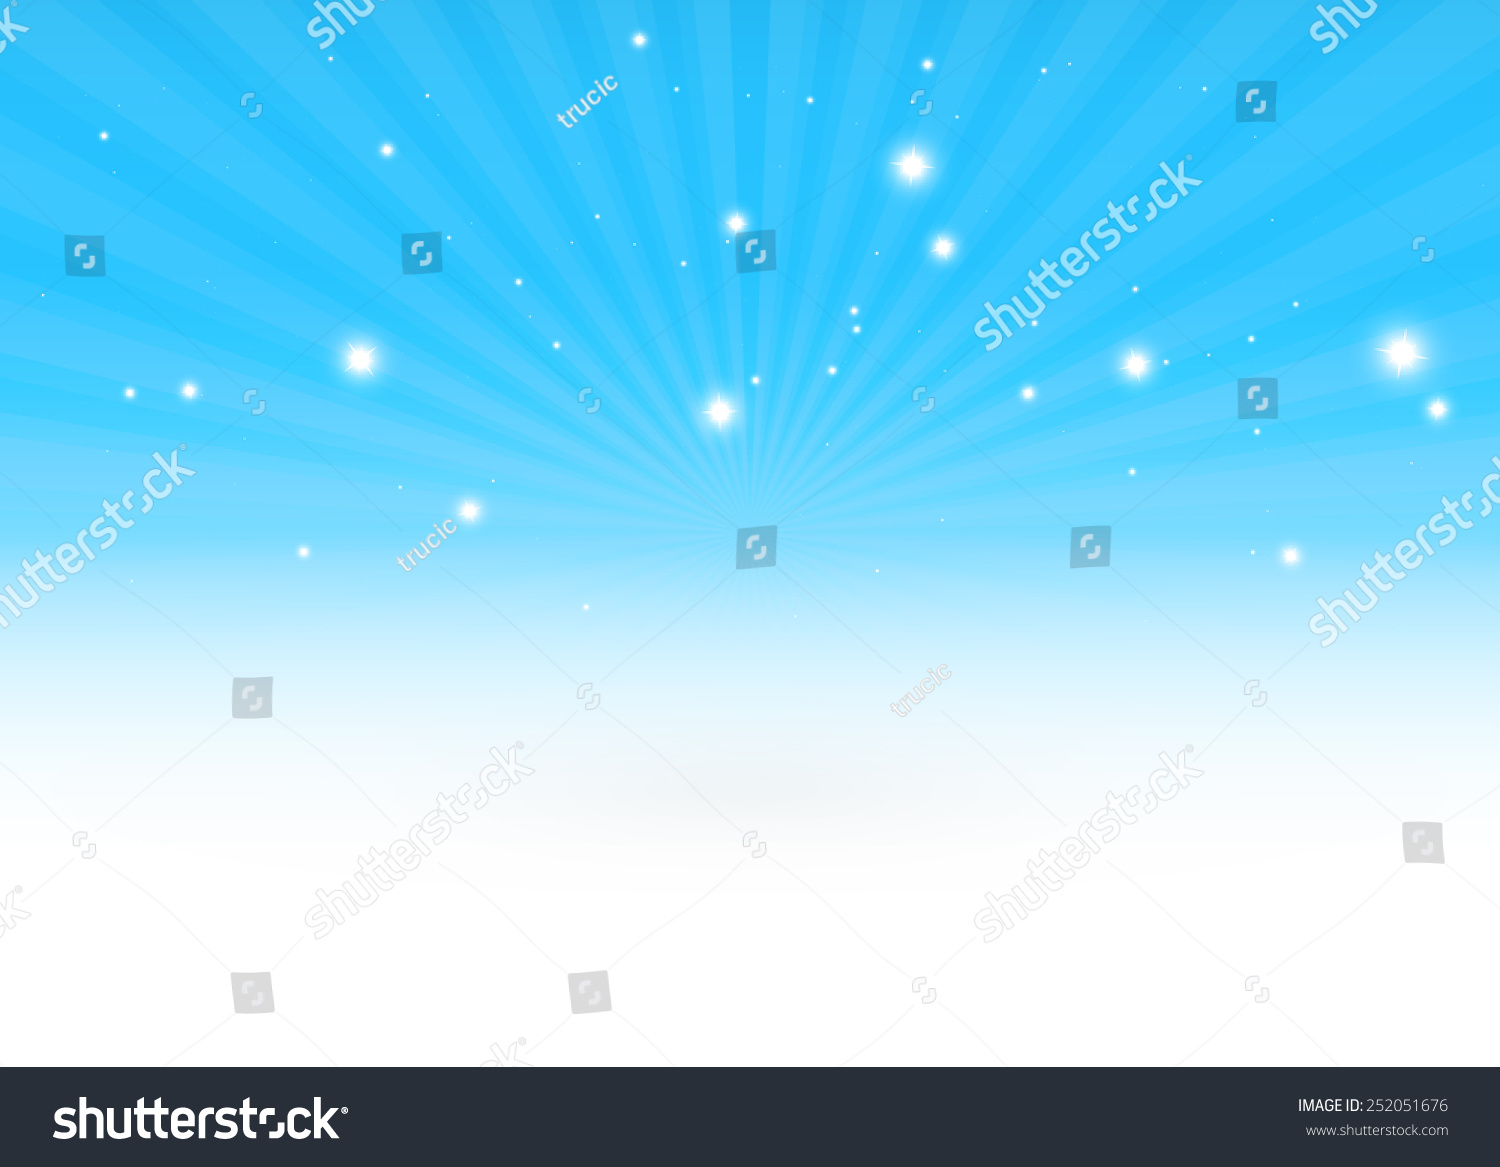 Glittering Vector 3d Blue Burst Scene Stock Vector